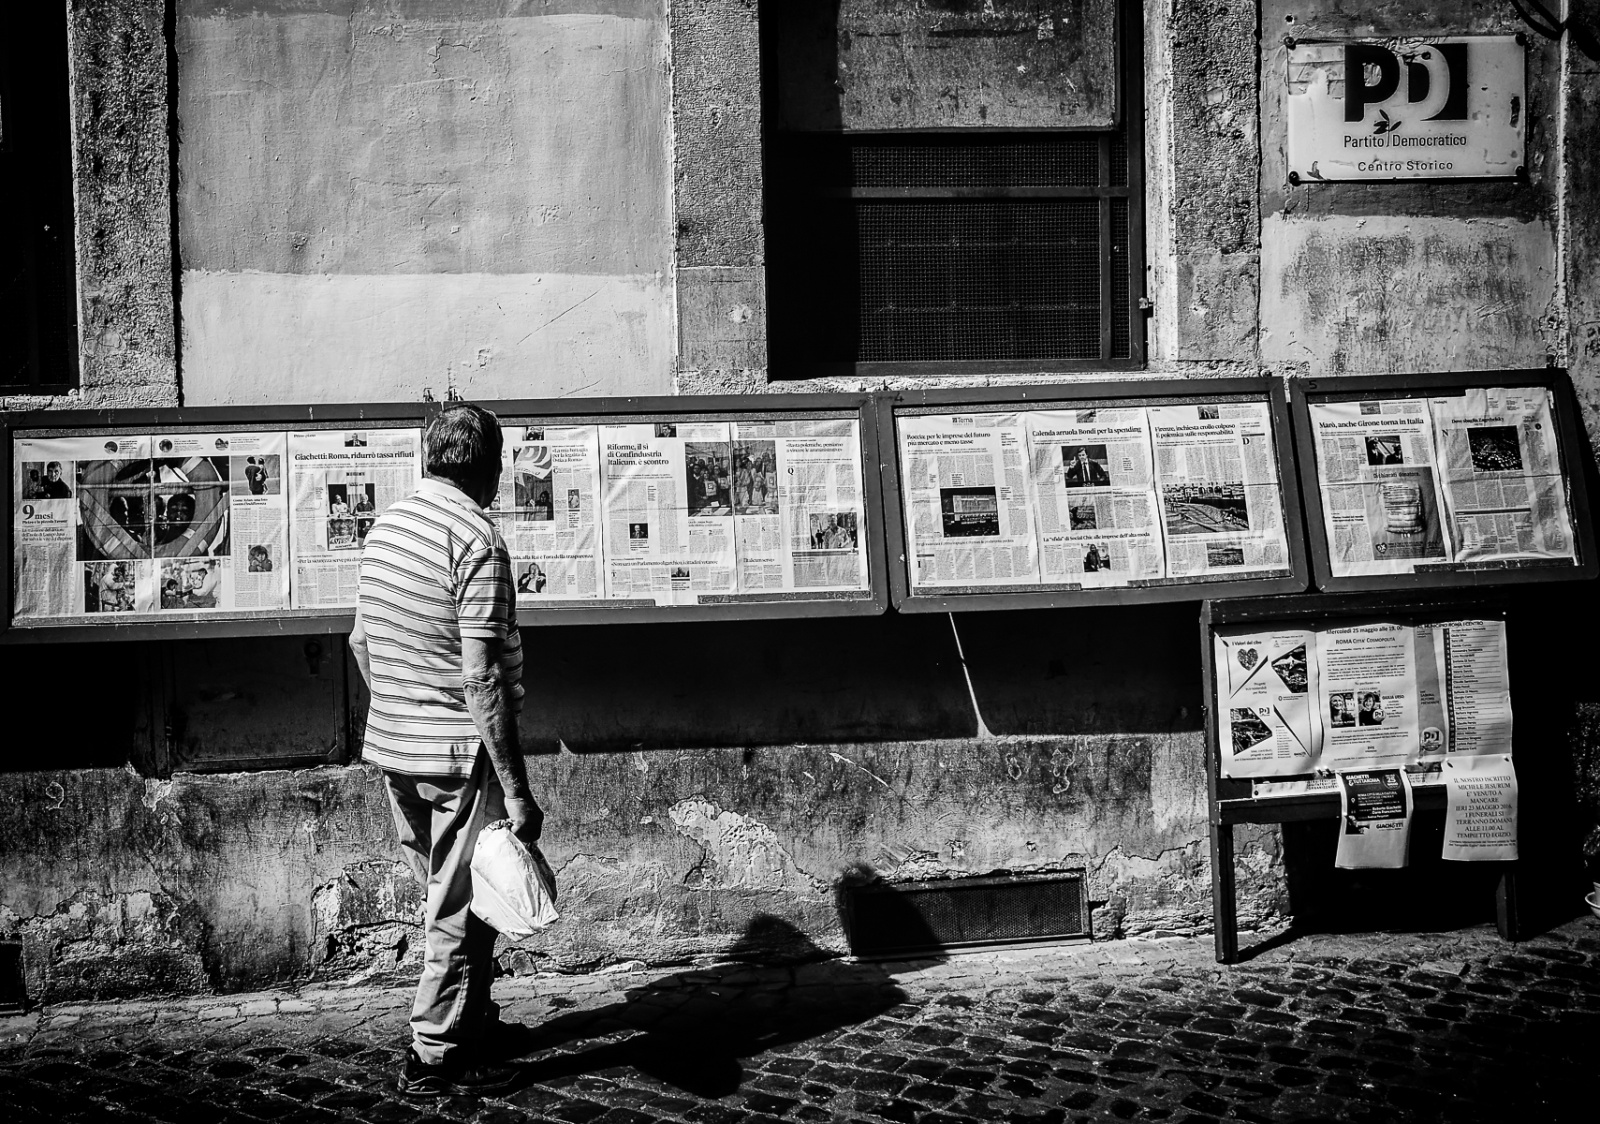 A man contemplating the newspaper outside the PD offices in Via dei Giubbonari